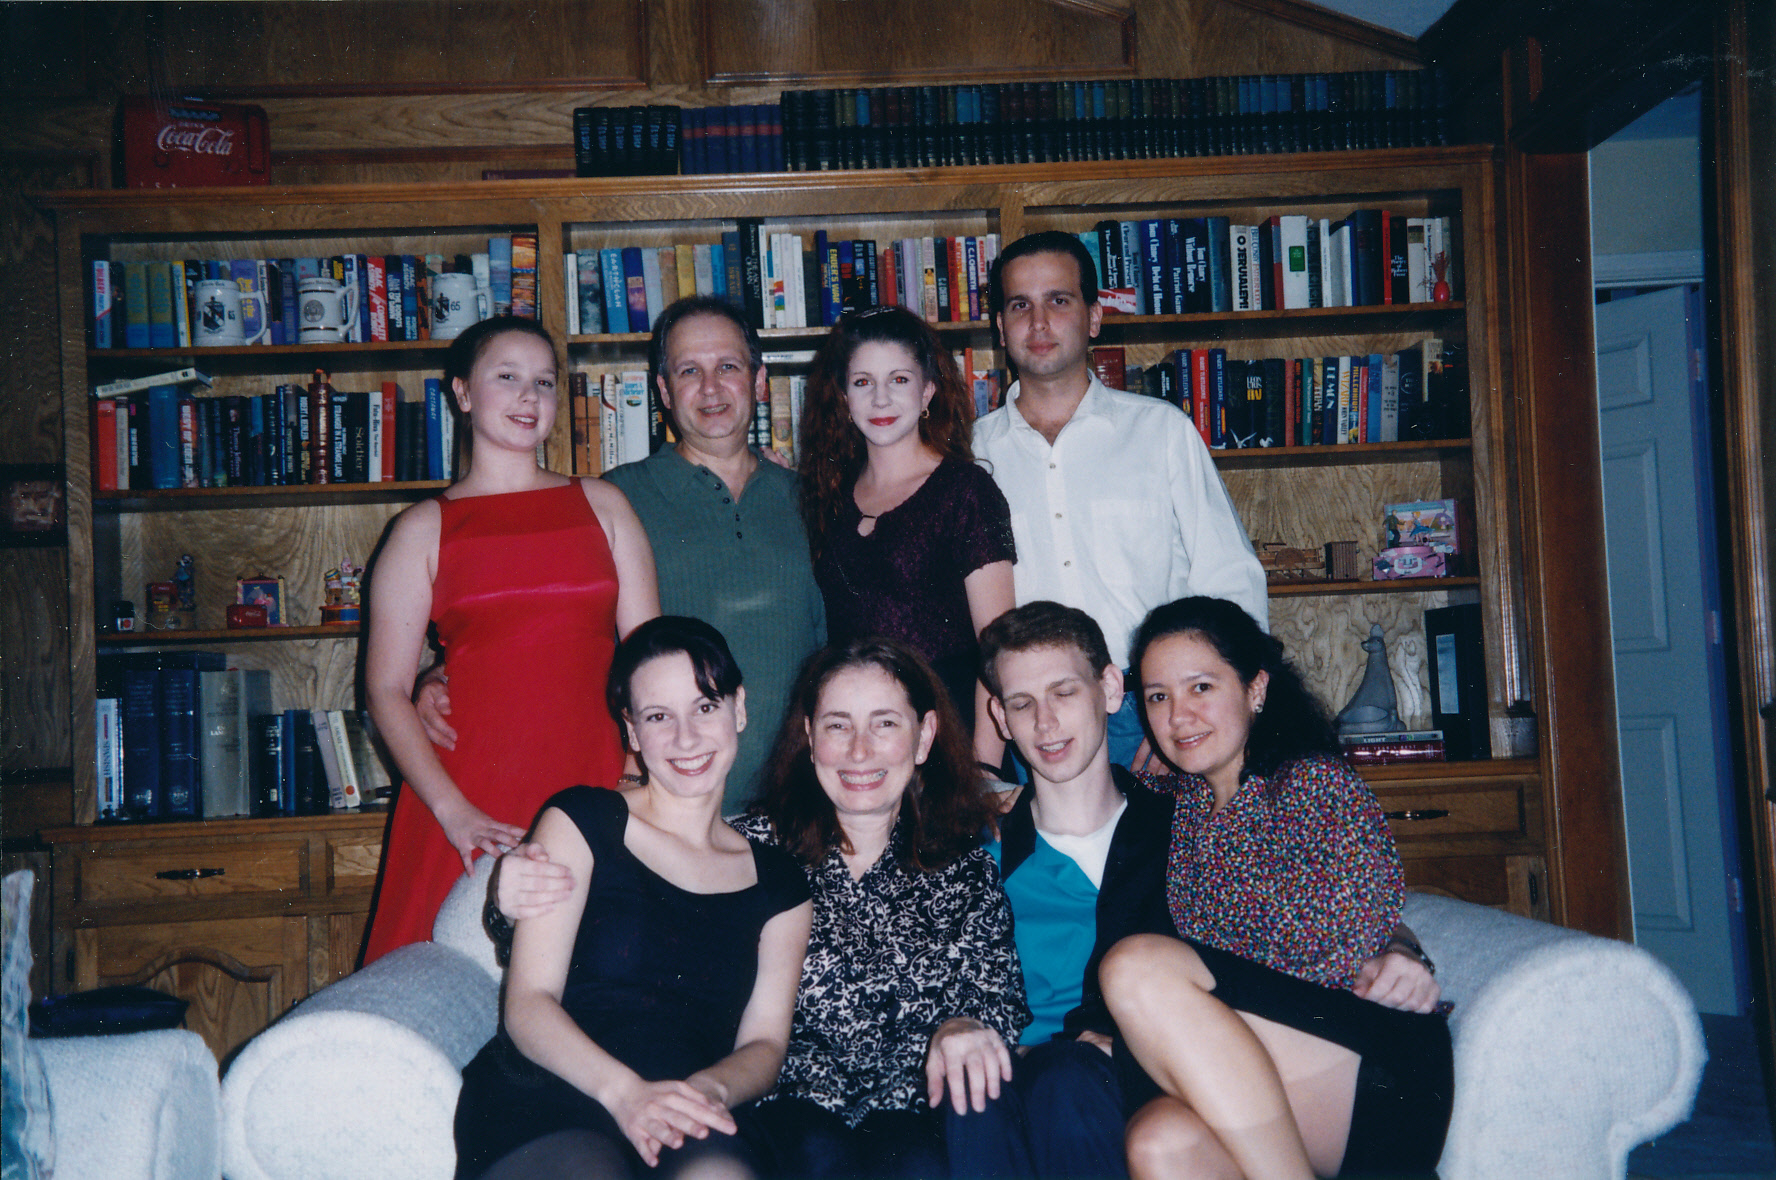 Thanksgiving 1998. (L-R) Standing: Cheryl Mayoff, Bernie Mayoff, Jennifer, Jeffrey Mayoff. Sitting: Beth Mayoff, Denise Mayoff, Rob Mayoff, Delia Hoker